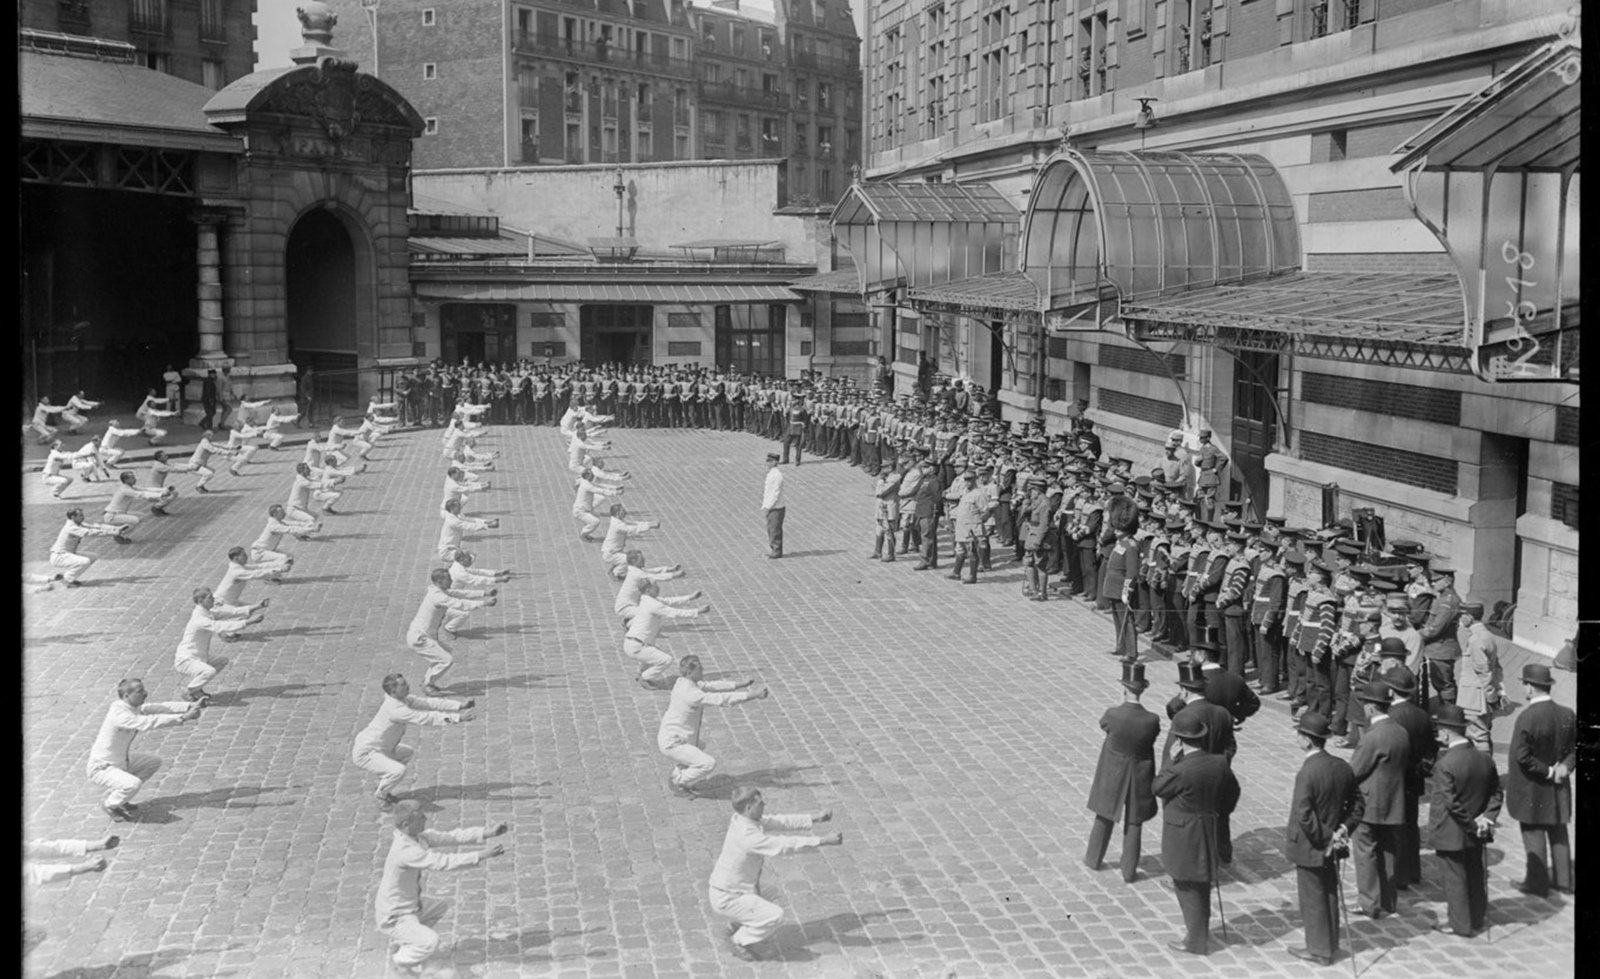 At the barracks in the centre of Paris: Physical Education with a military band, Agence Rol. Agence photographique 1917 Paris, French National Library - Bibliothèque Nationale de France, Public Domain Mark